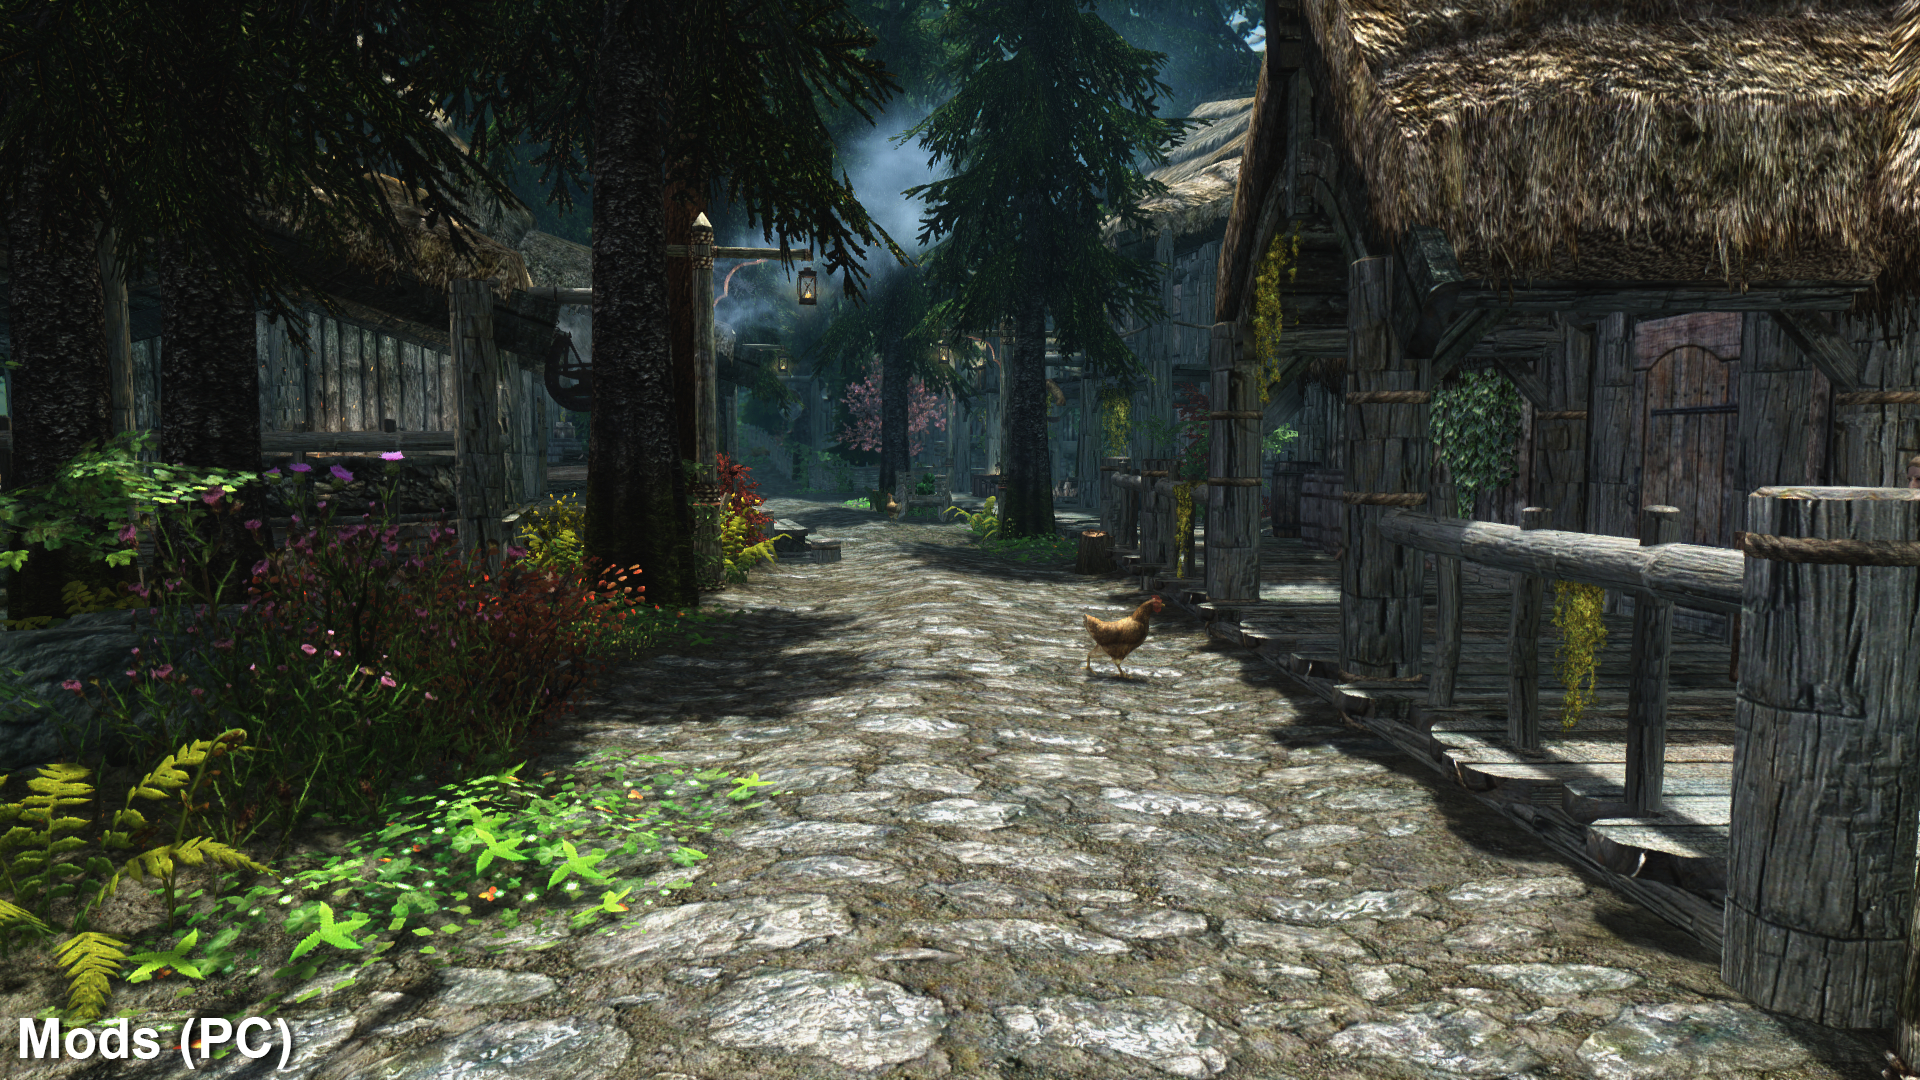 Skyrim HD texture pack hack pc